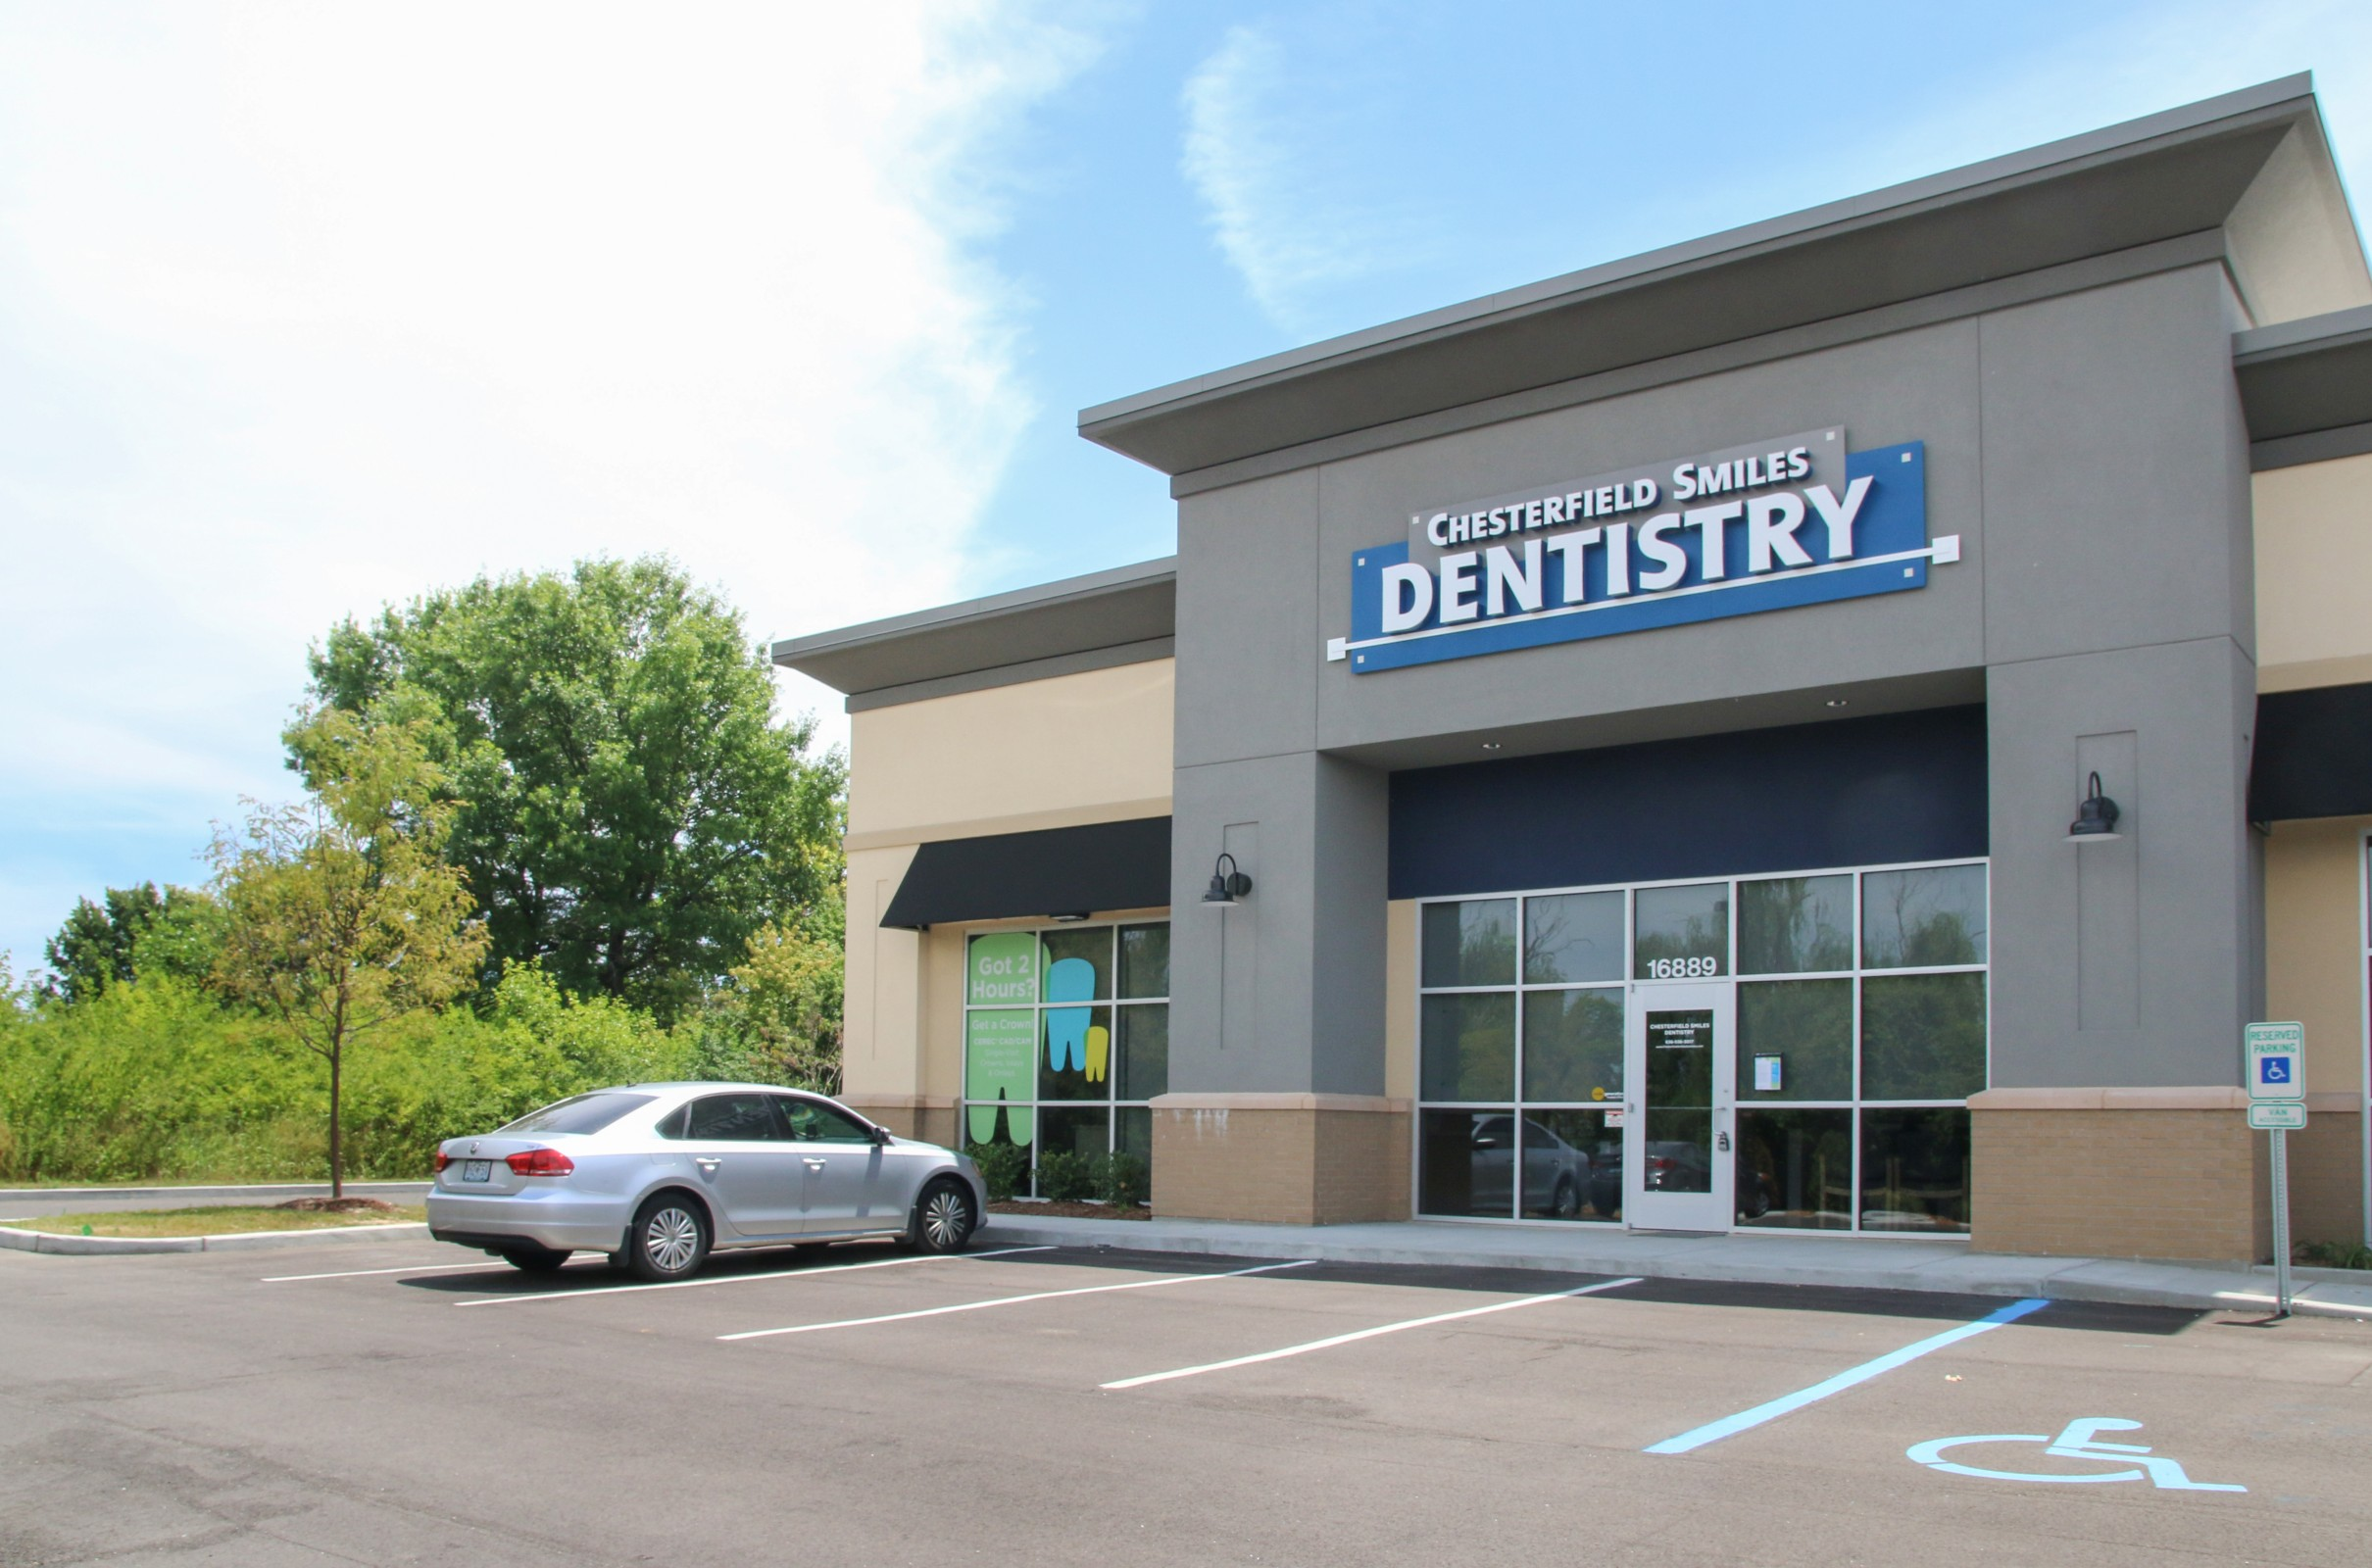 Chesterfield Smiles Dentistry image 9